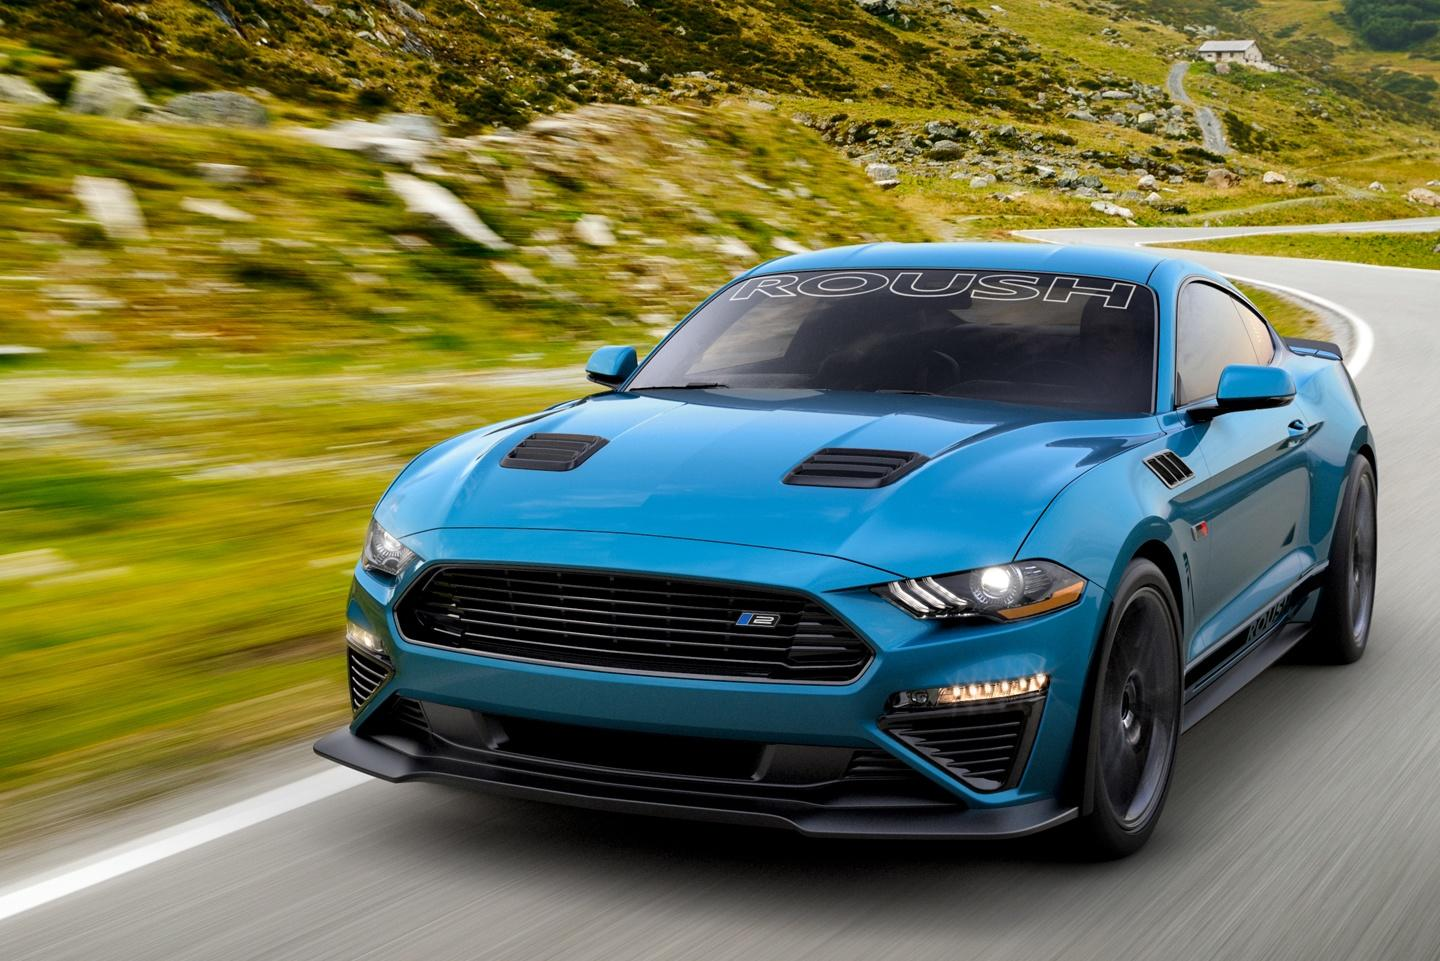 2020 ROUSH Stage 2 Mustang Duncan, BC